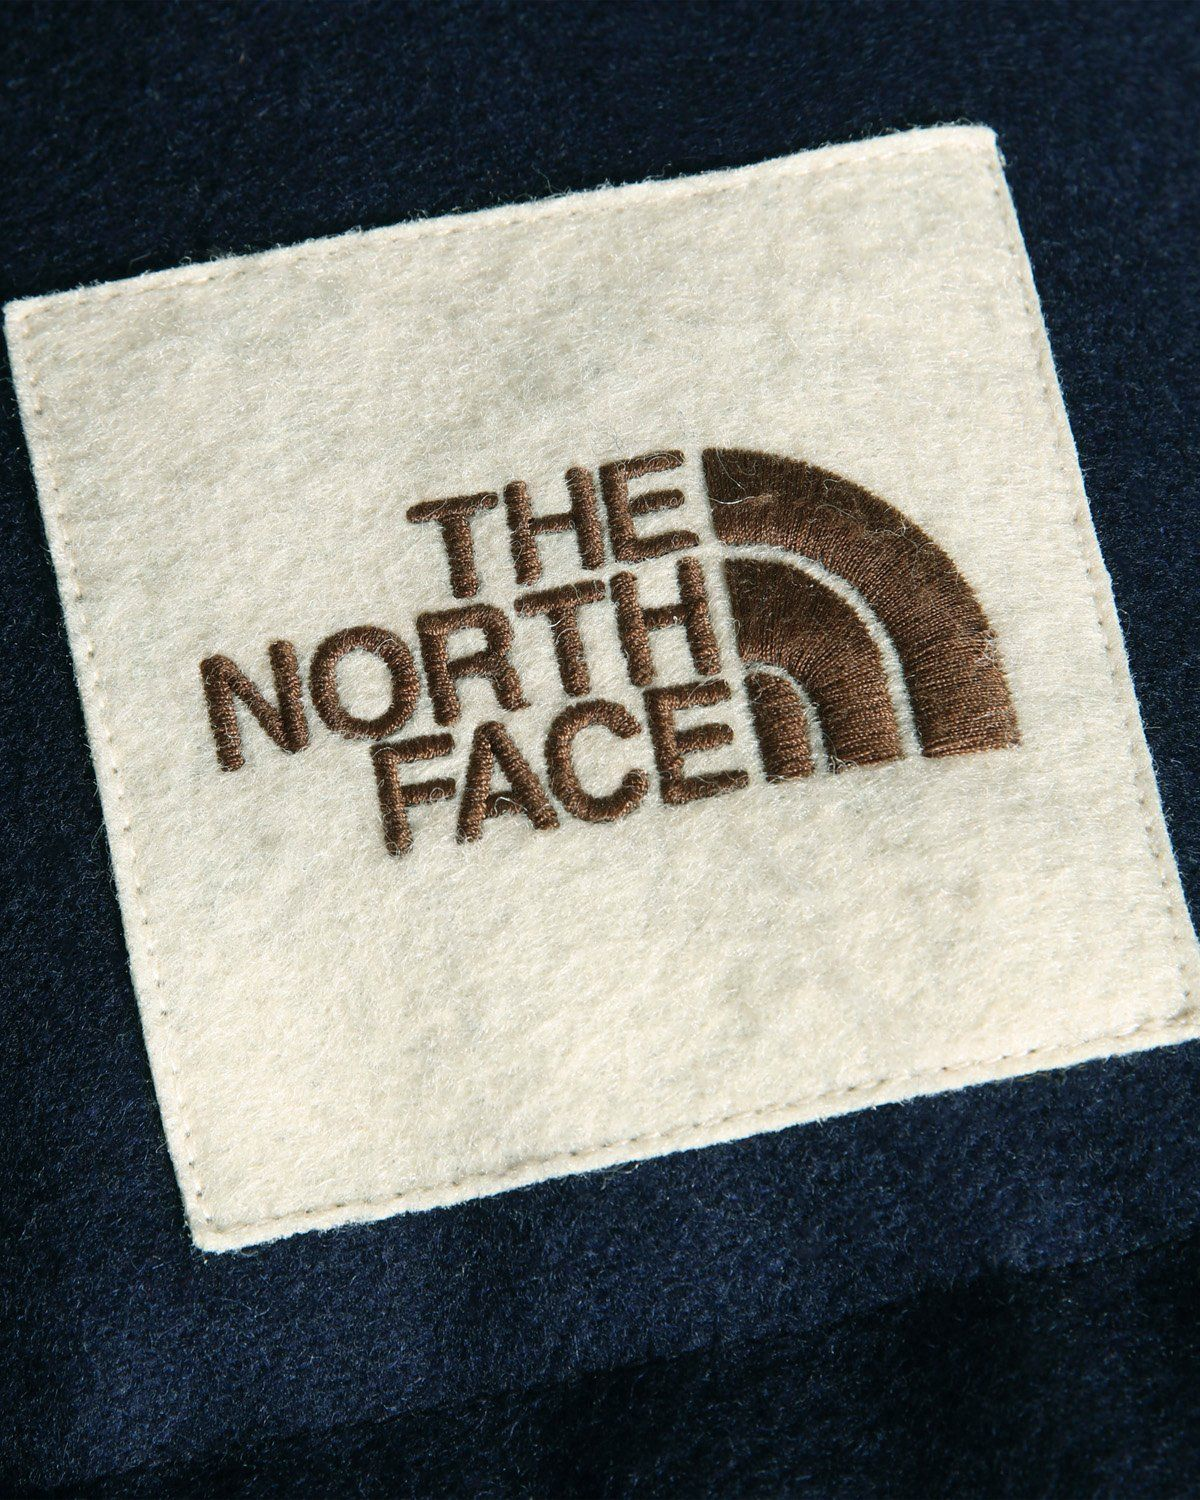 The North Face Brown Label - Larkspur Wool Down Jacket Navy Women - Image 5